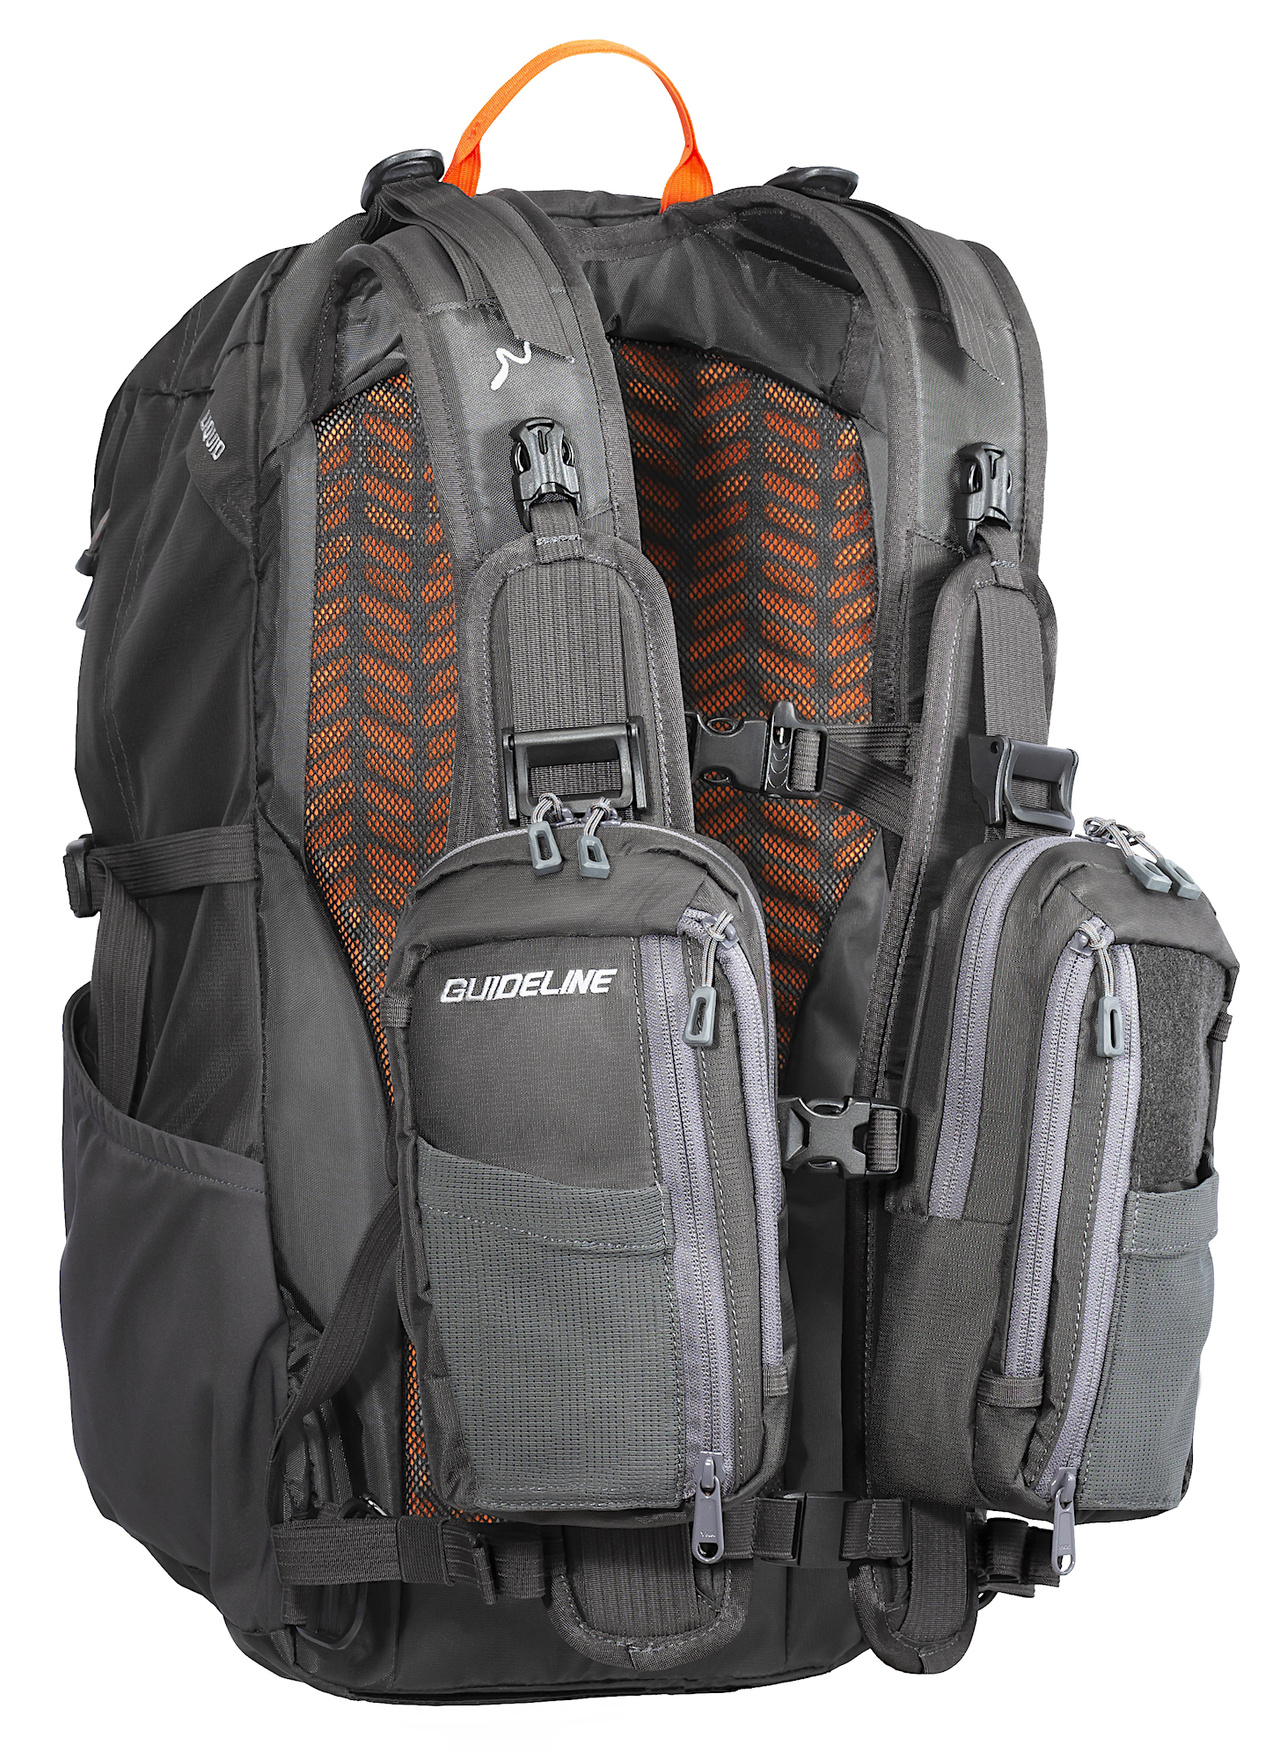 Experience DW Vest Guideline AB